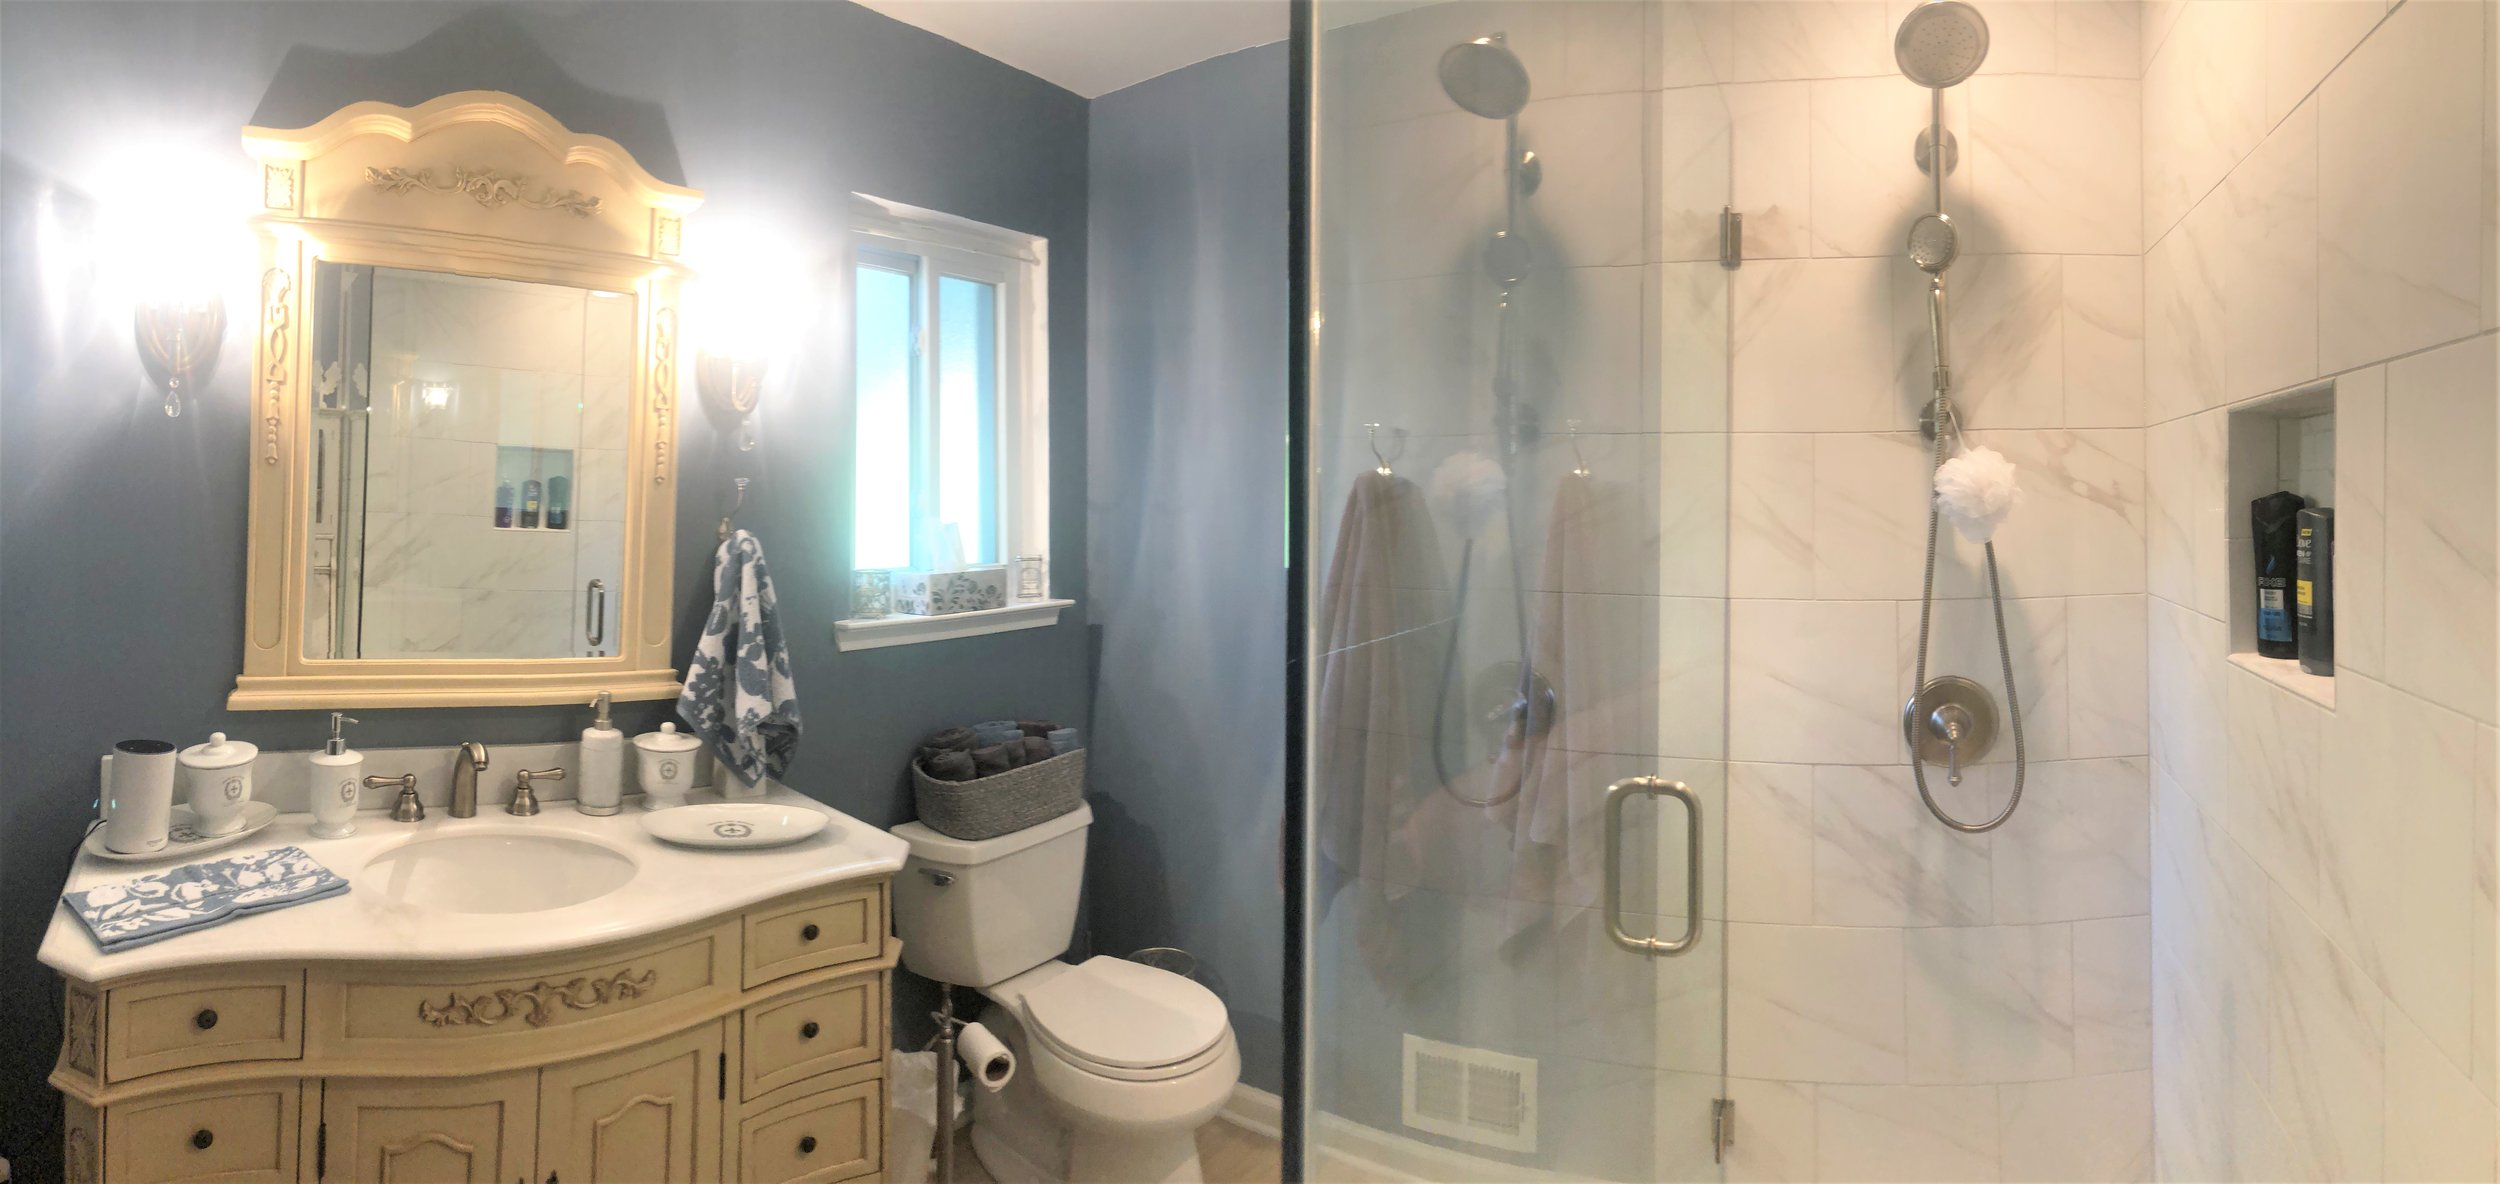 Pano- entire bathroom .jpg